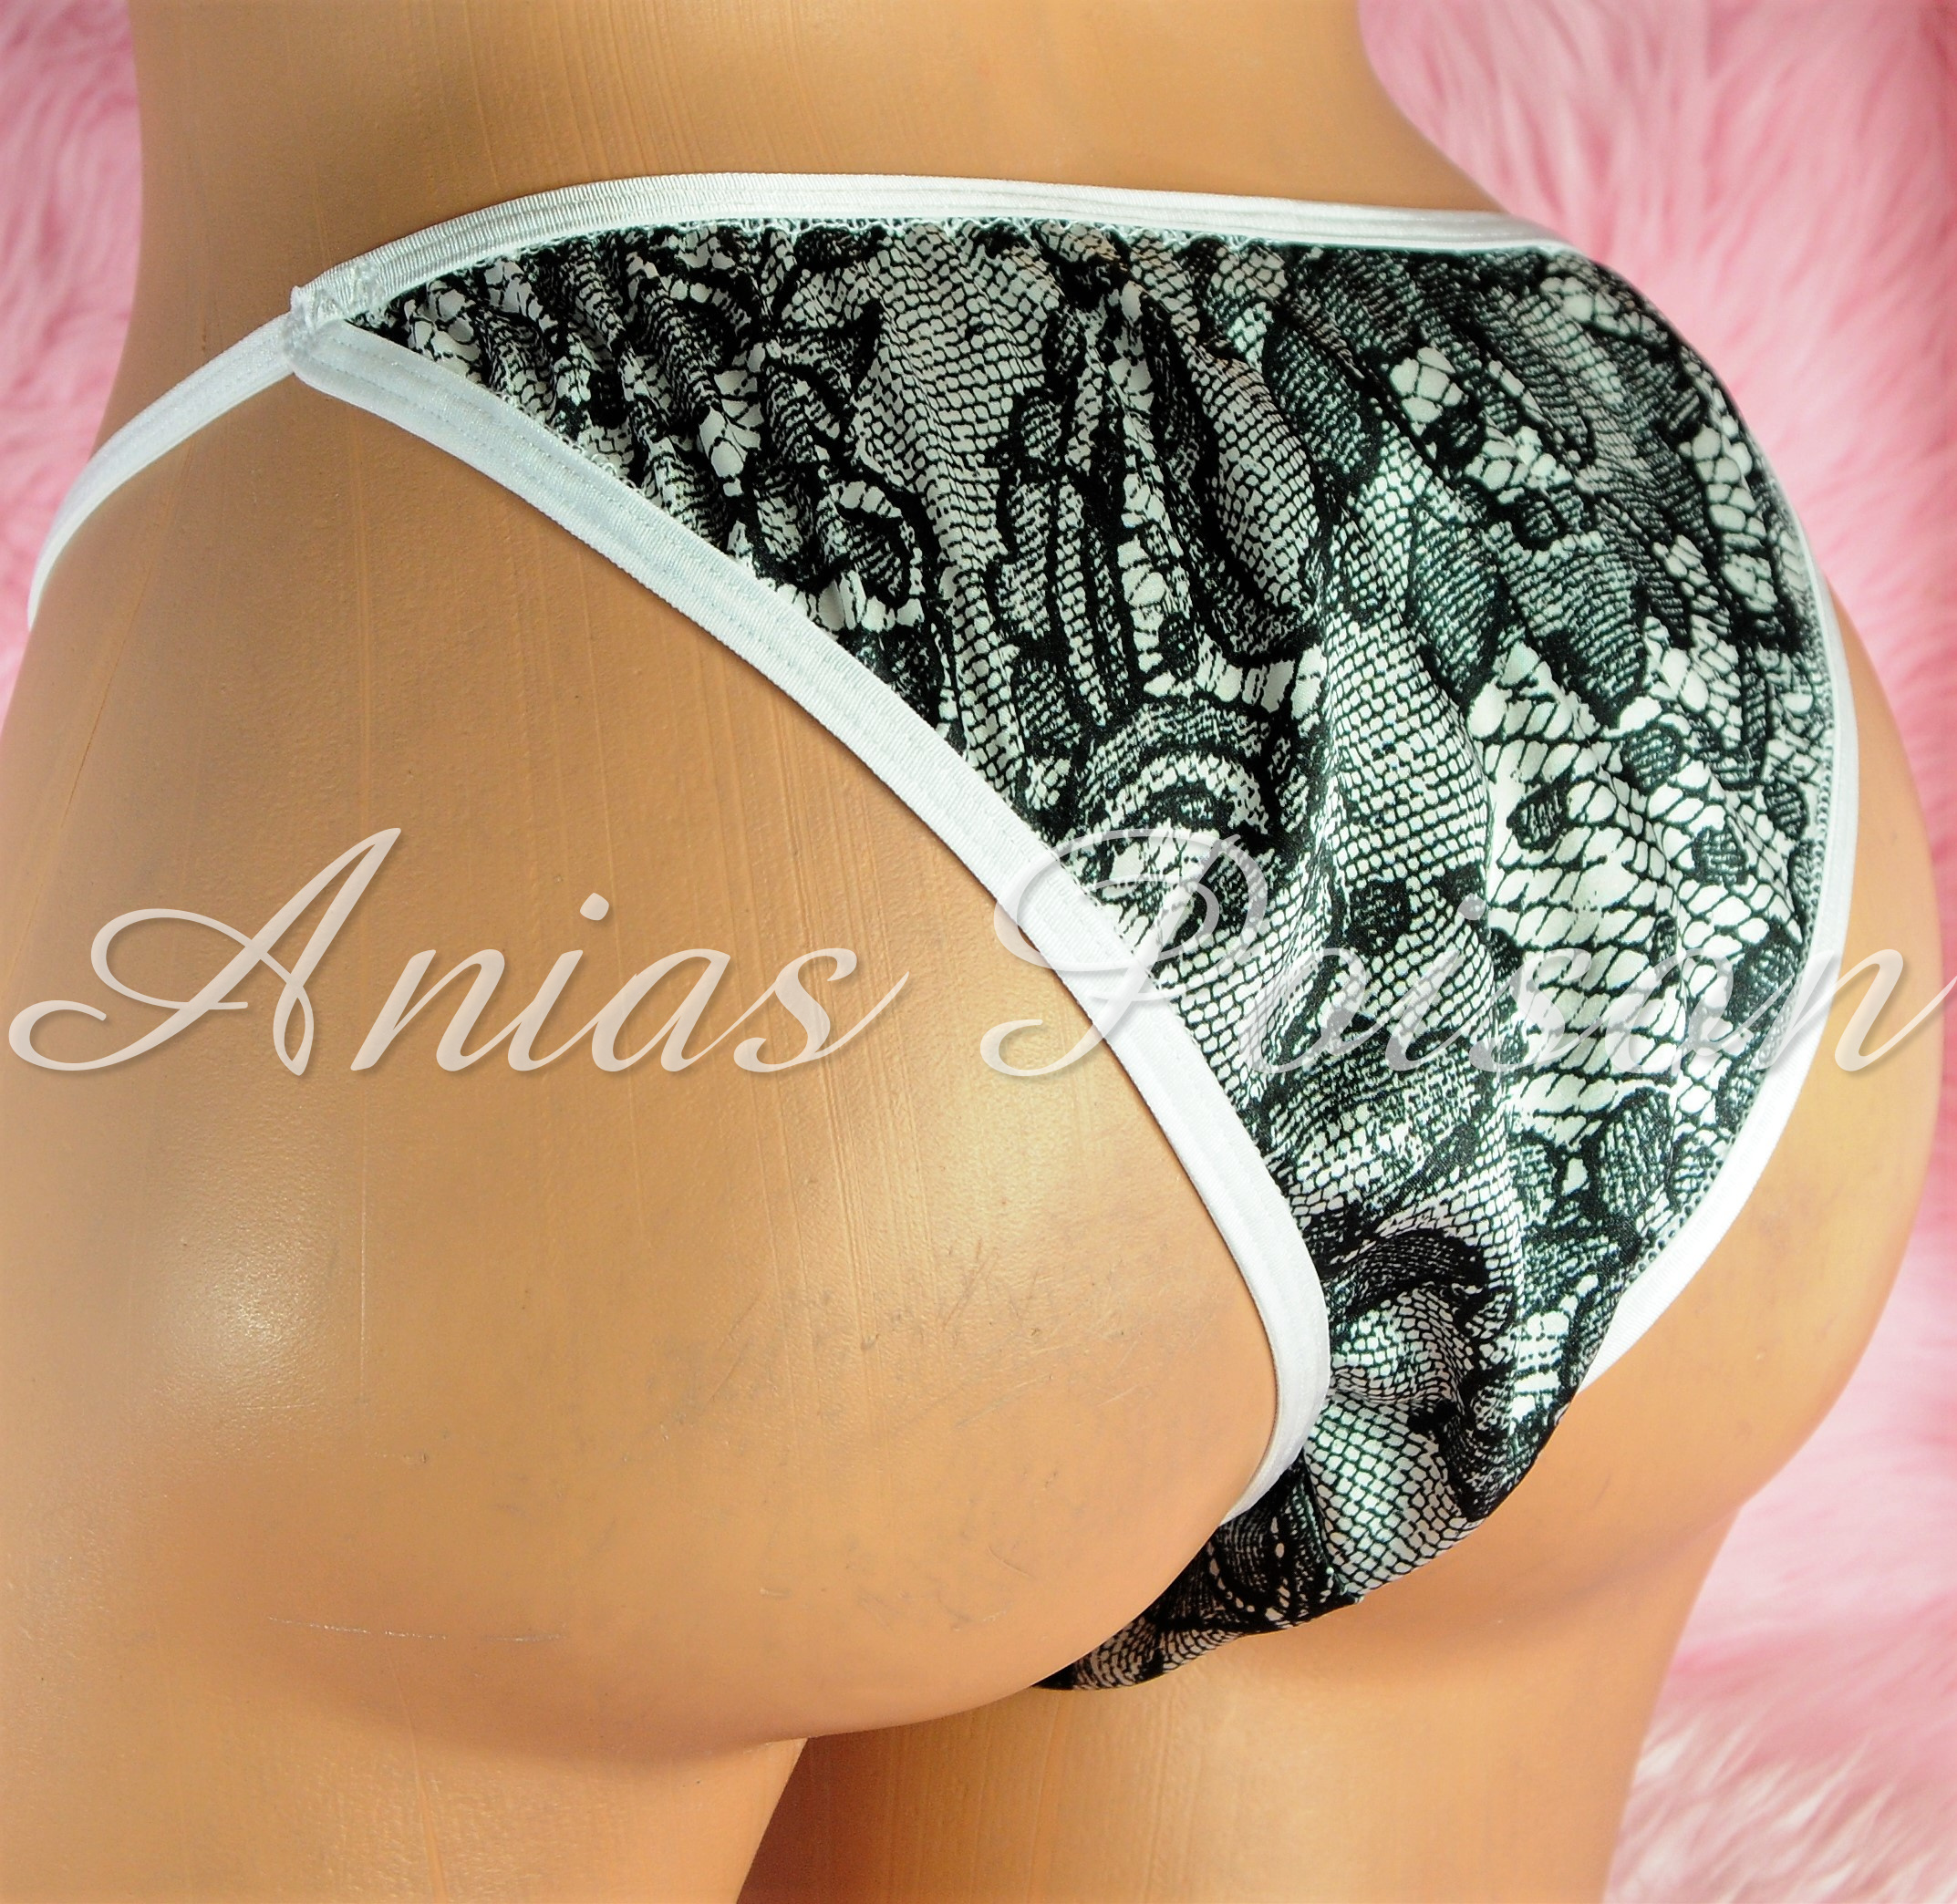 Sissy Mens MANties Lined front satin Brazilian Cut Cheeky Butt pouch panties S M L XL